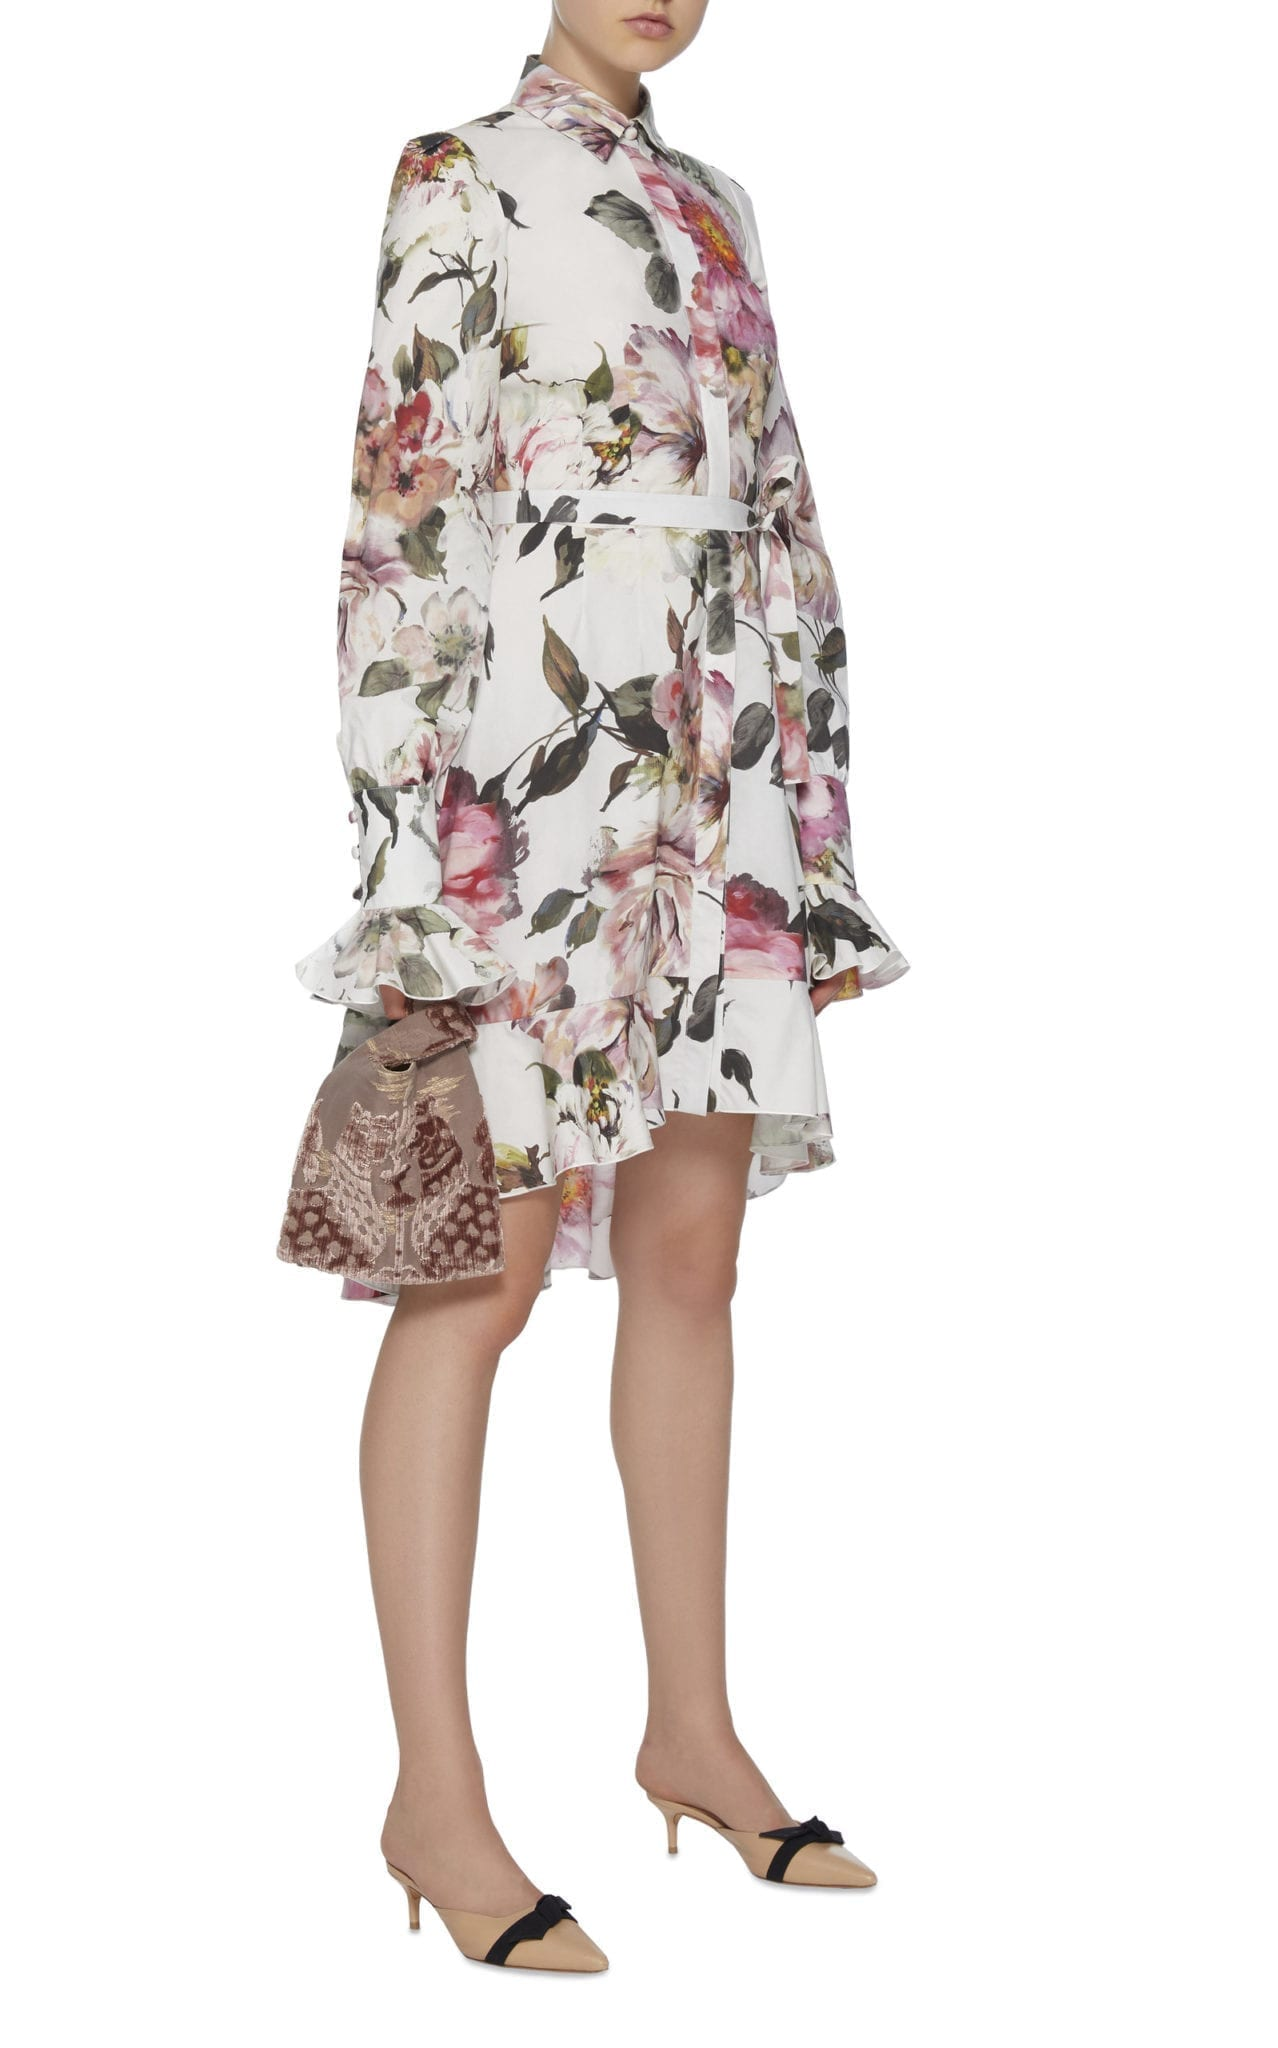 MARCHESA Cotton High-Low Mini Shirt White / Floral Printed Dress